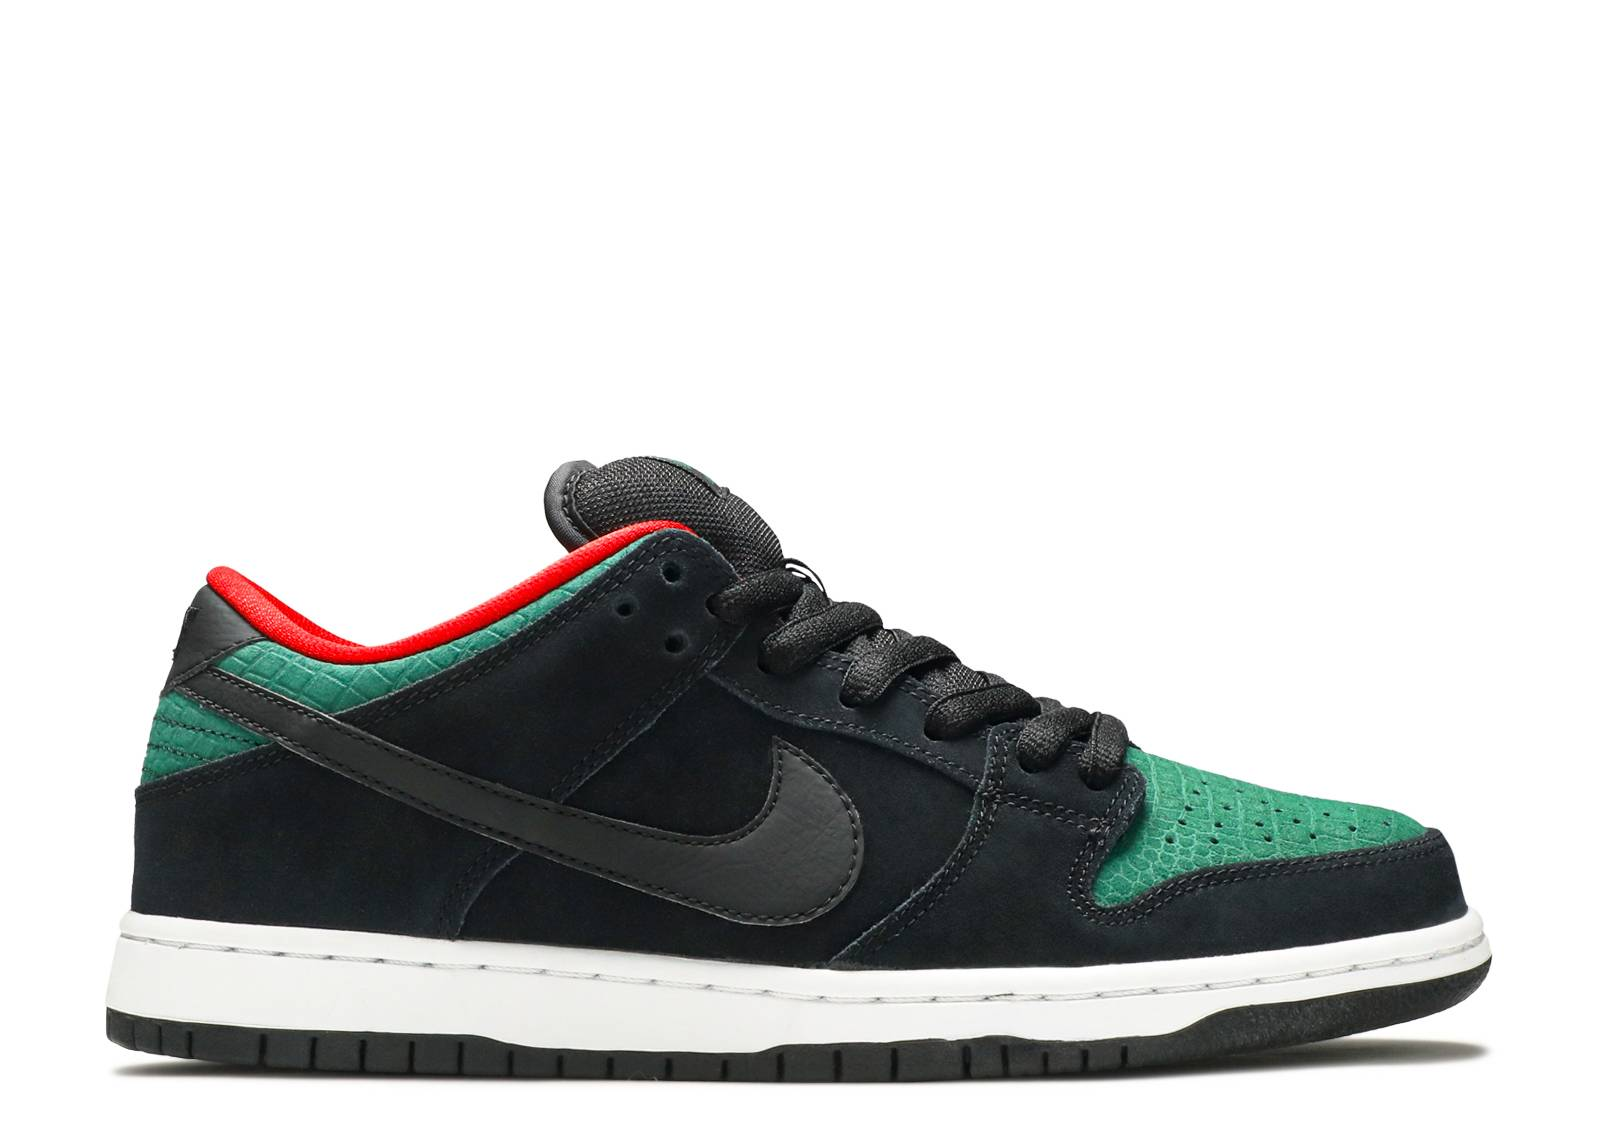 Mens Nike Dunk Sb Low Black Cyan Shoe Online Without Sale Tax